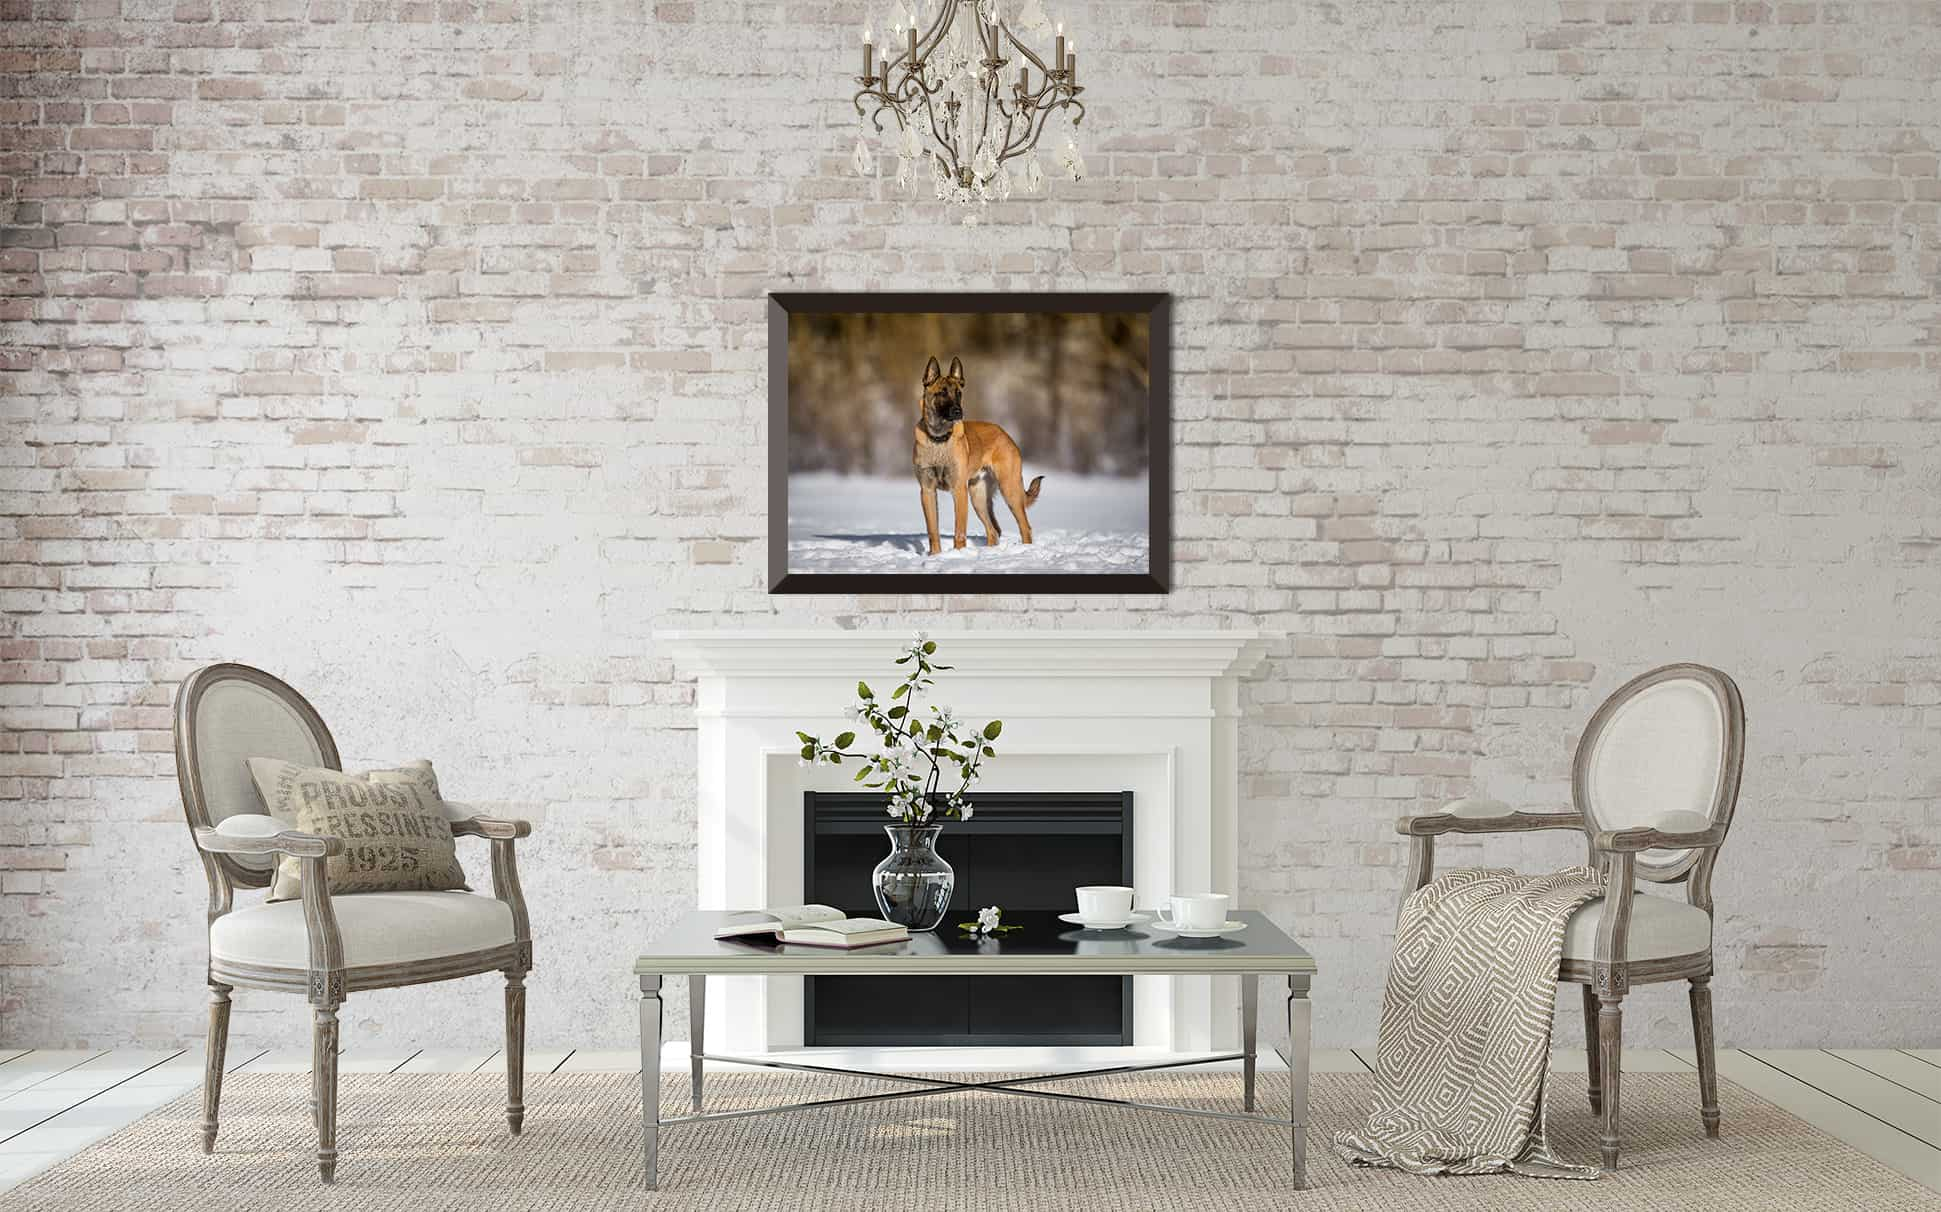 Framed Print of Belgian Malinois over Fireplace from Shadow Dog Photography